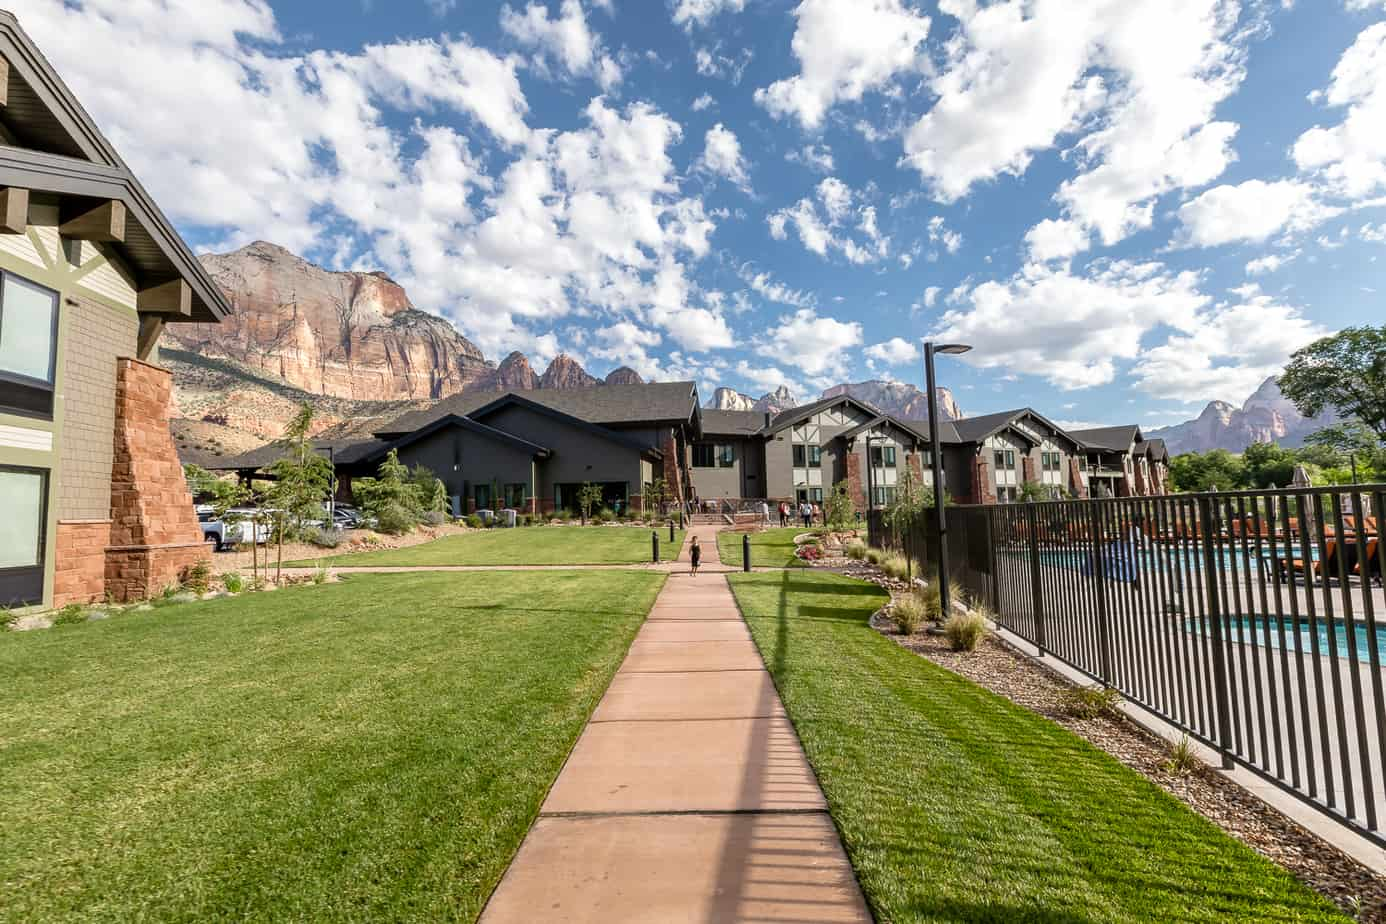 best place to stay for zion national park. SpringHIll Suite springdale review.